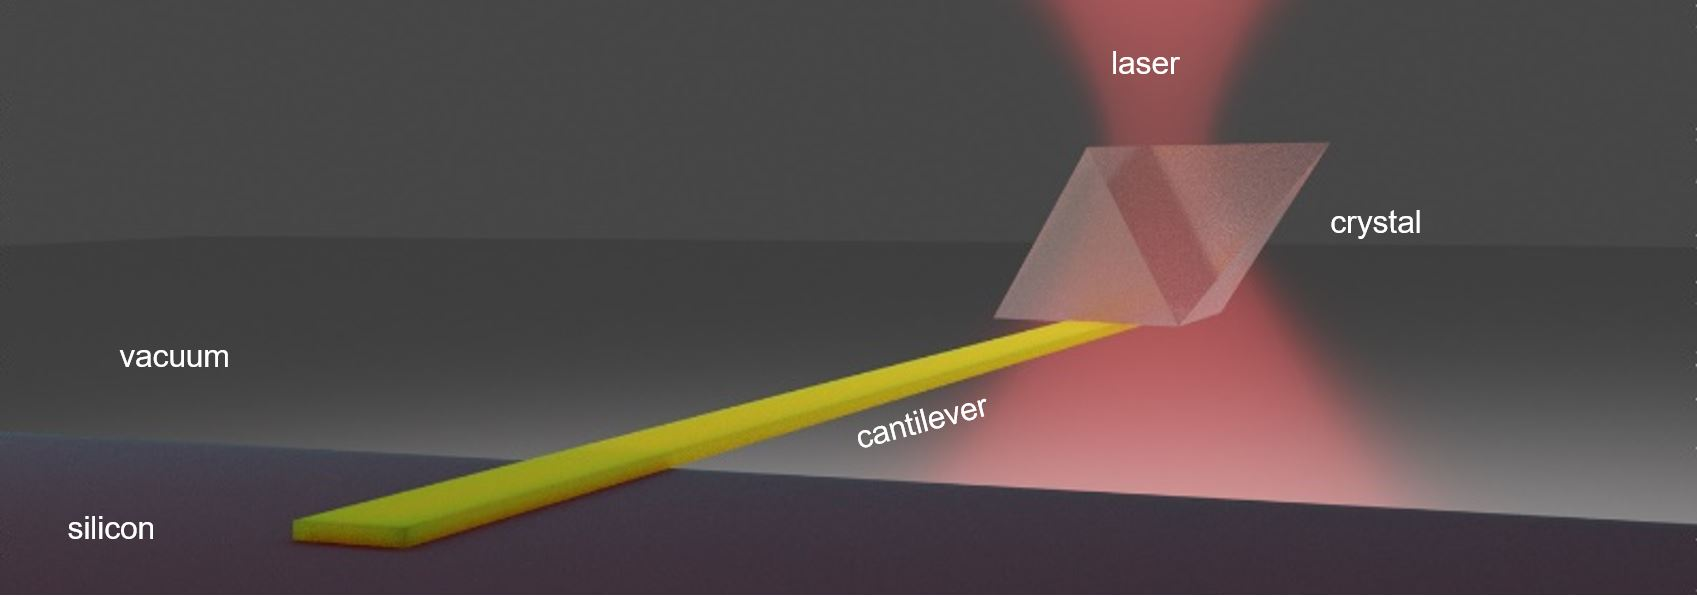 UW researchers used an infrared laser to cool a solid semiconductor material